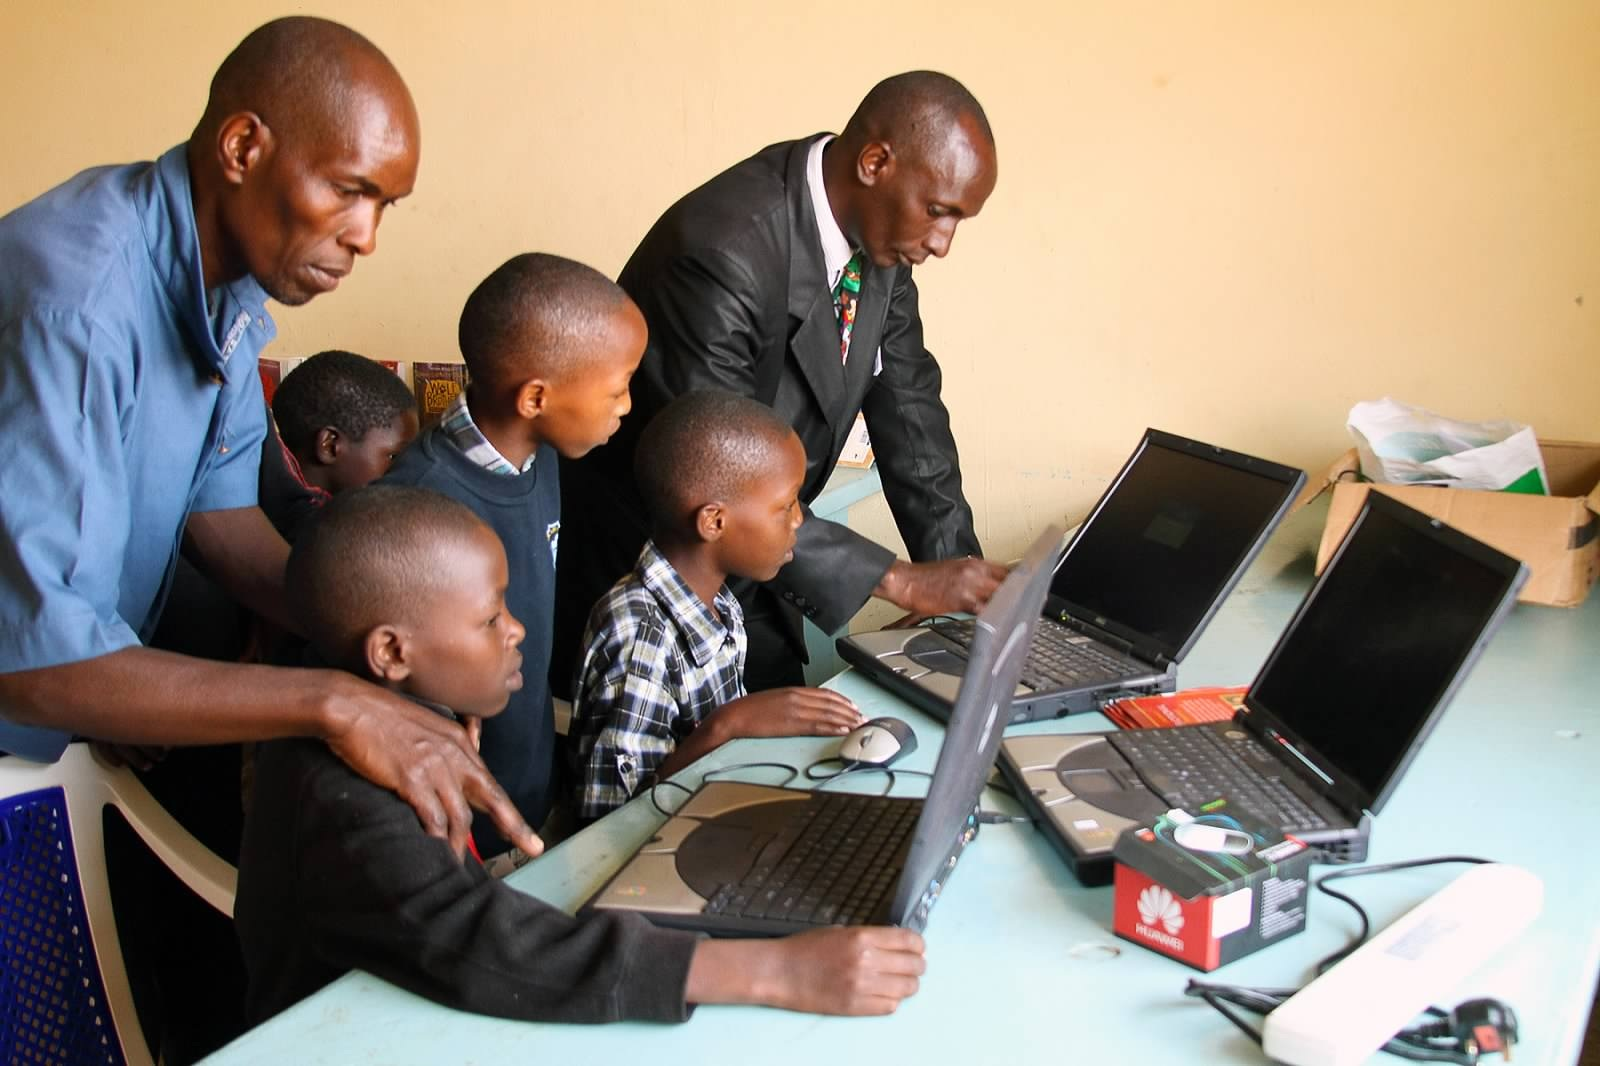 Computers restored and brought to Kenya for the children.